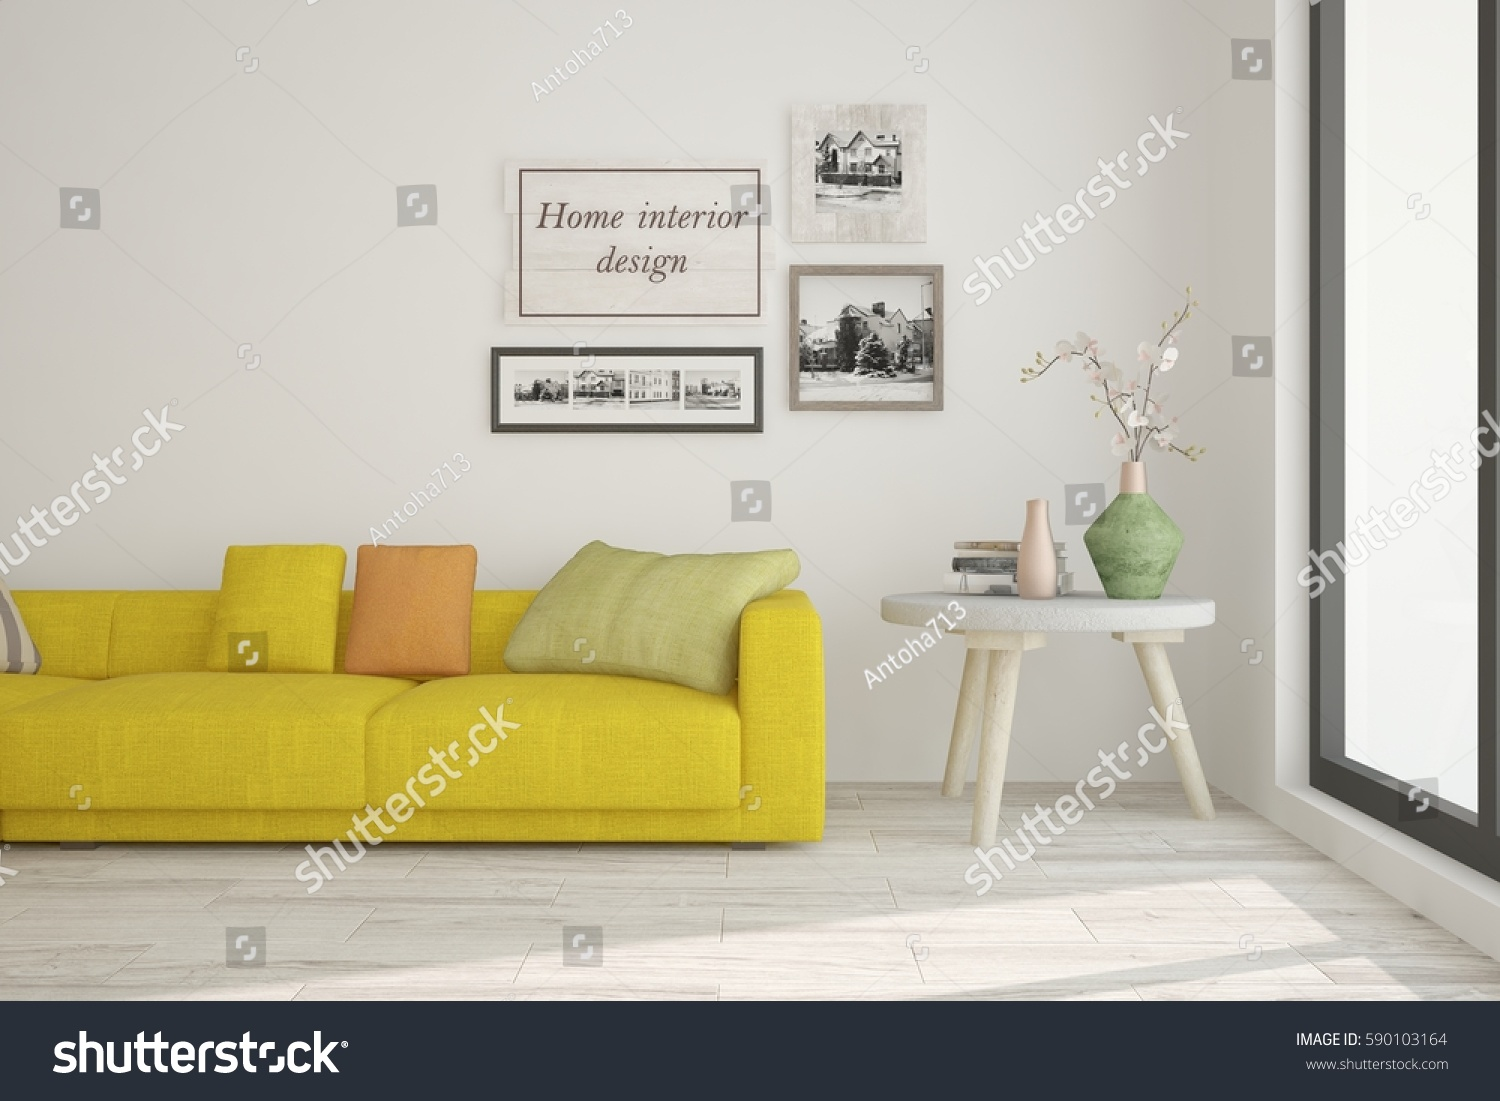 White Room Yellow Sofa Scandinavian Interior Stock